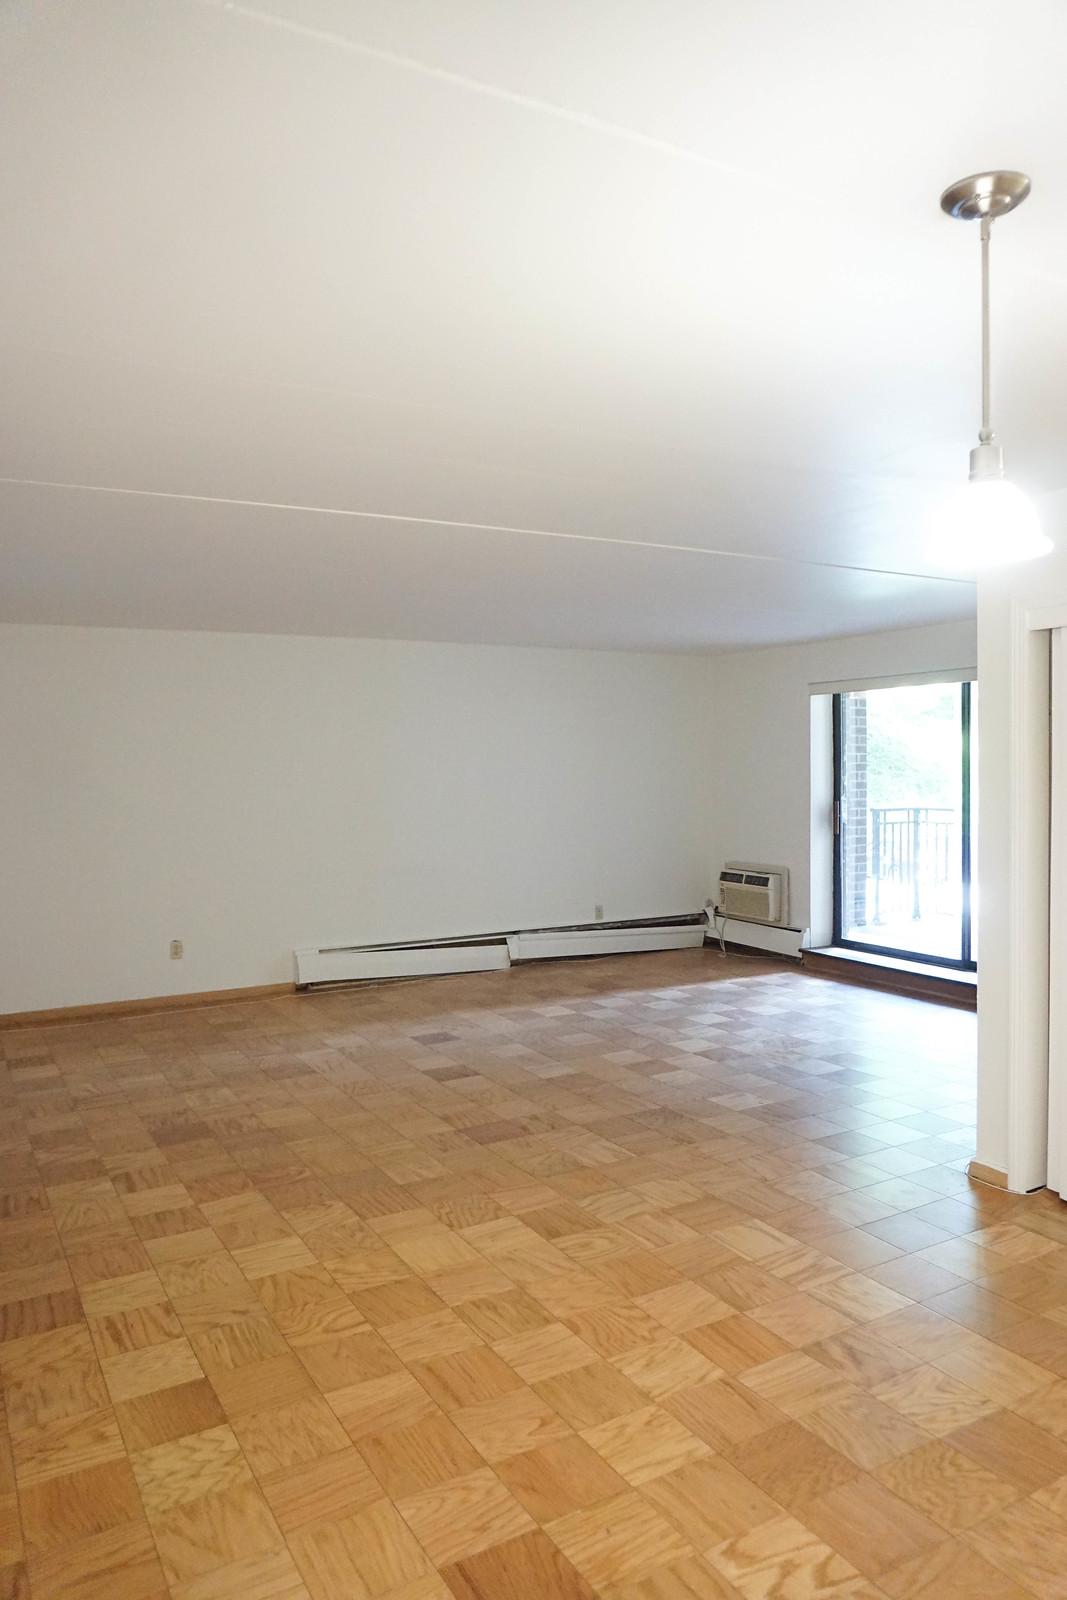 750 square foot New York Apartment Before Photos | Open Floor Plan Kitchen Living Room Dining Room